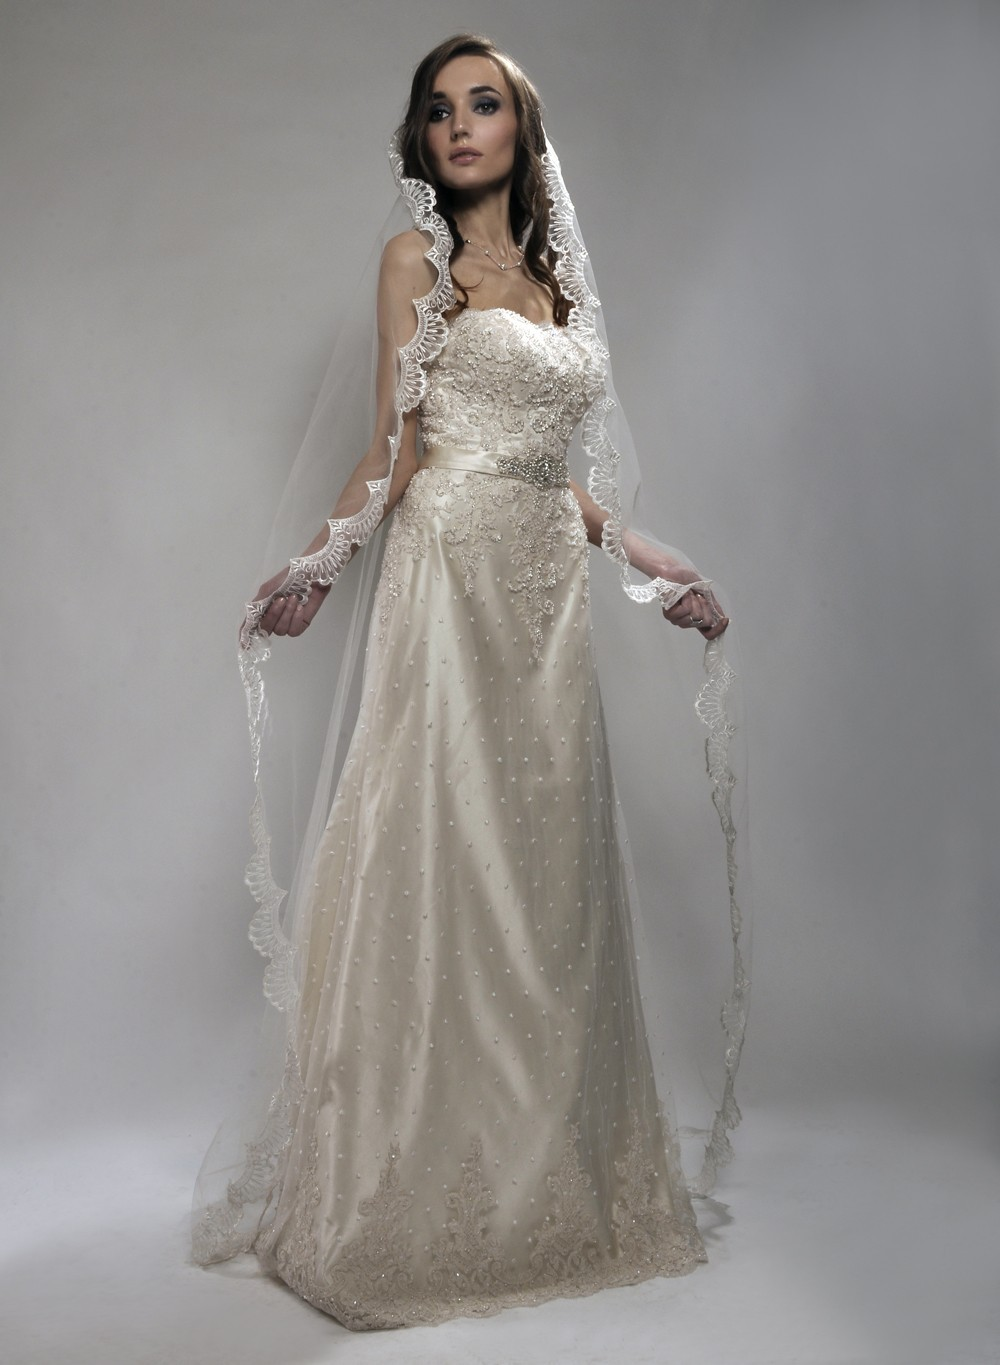 Chapel-length-bridal-veil-wedding-accessories-romantic-wedding-dress-lace.full